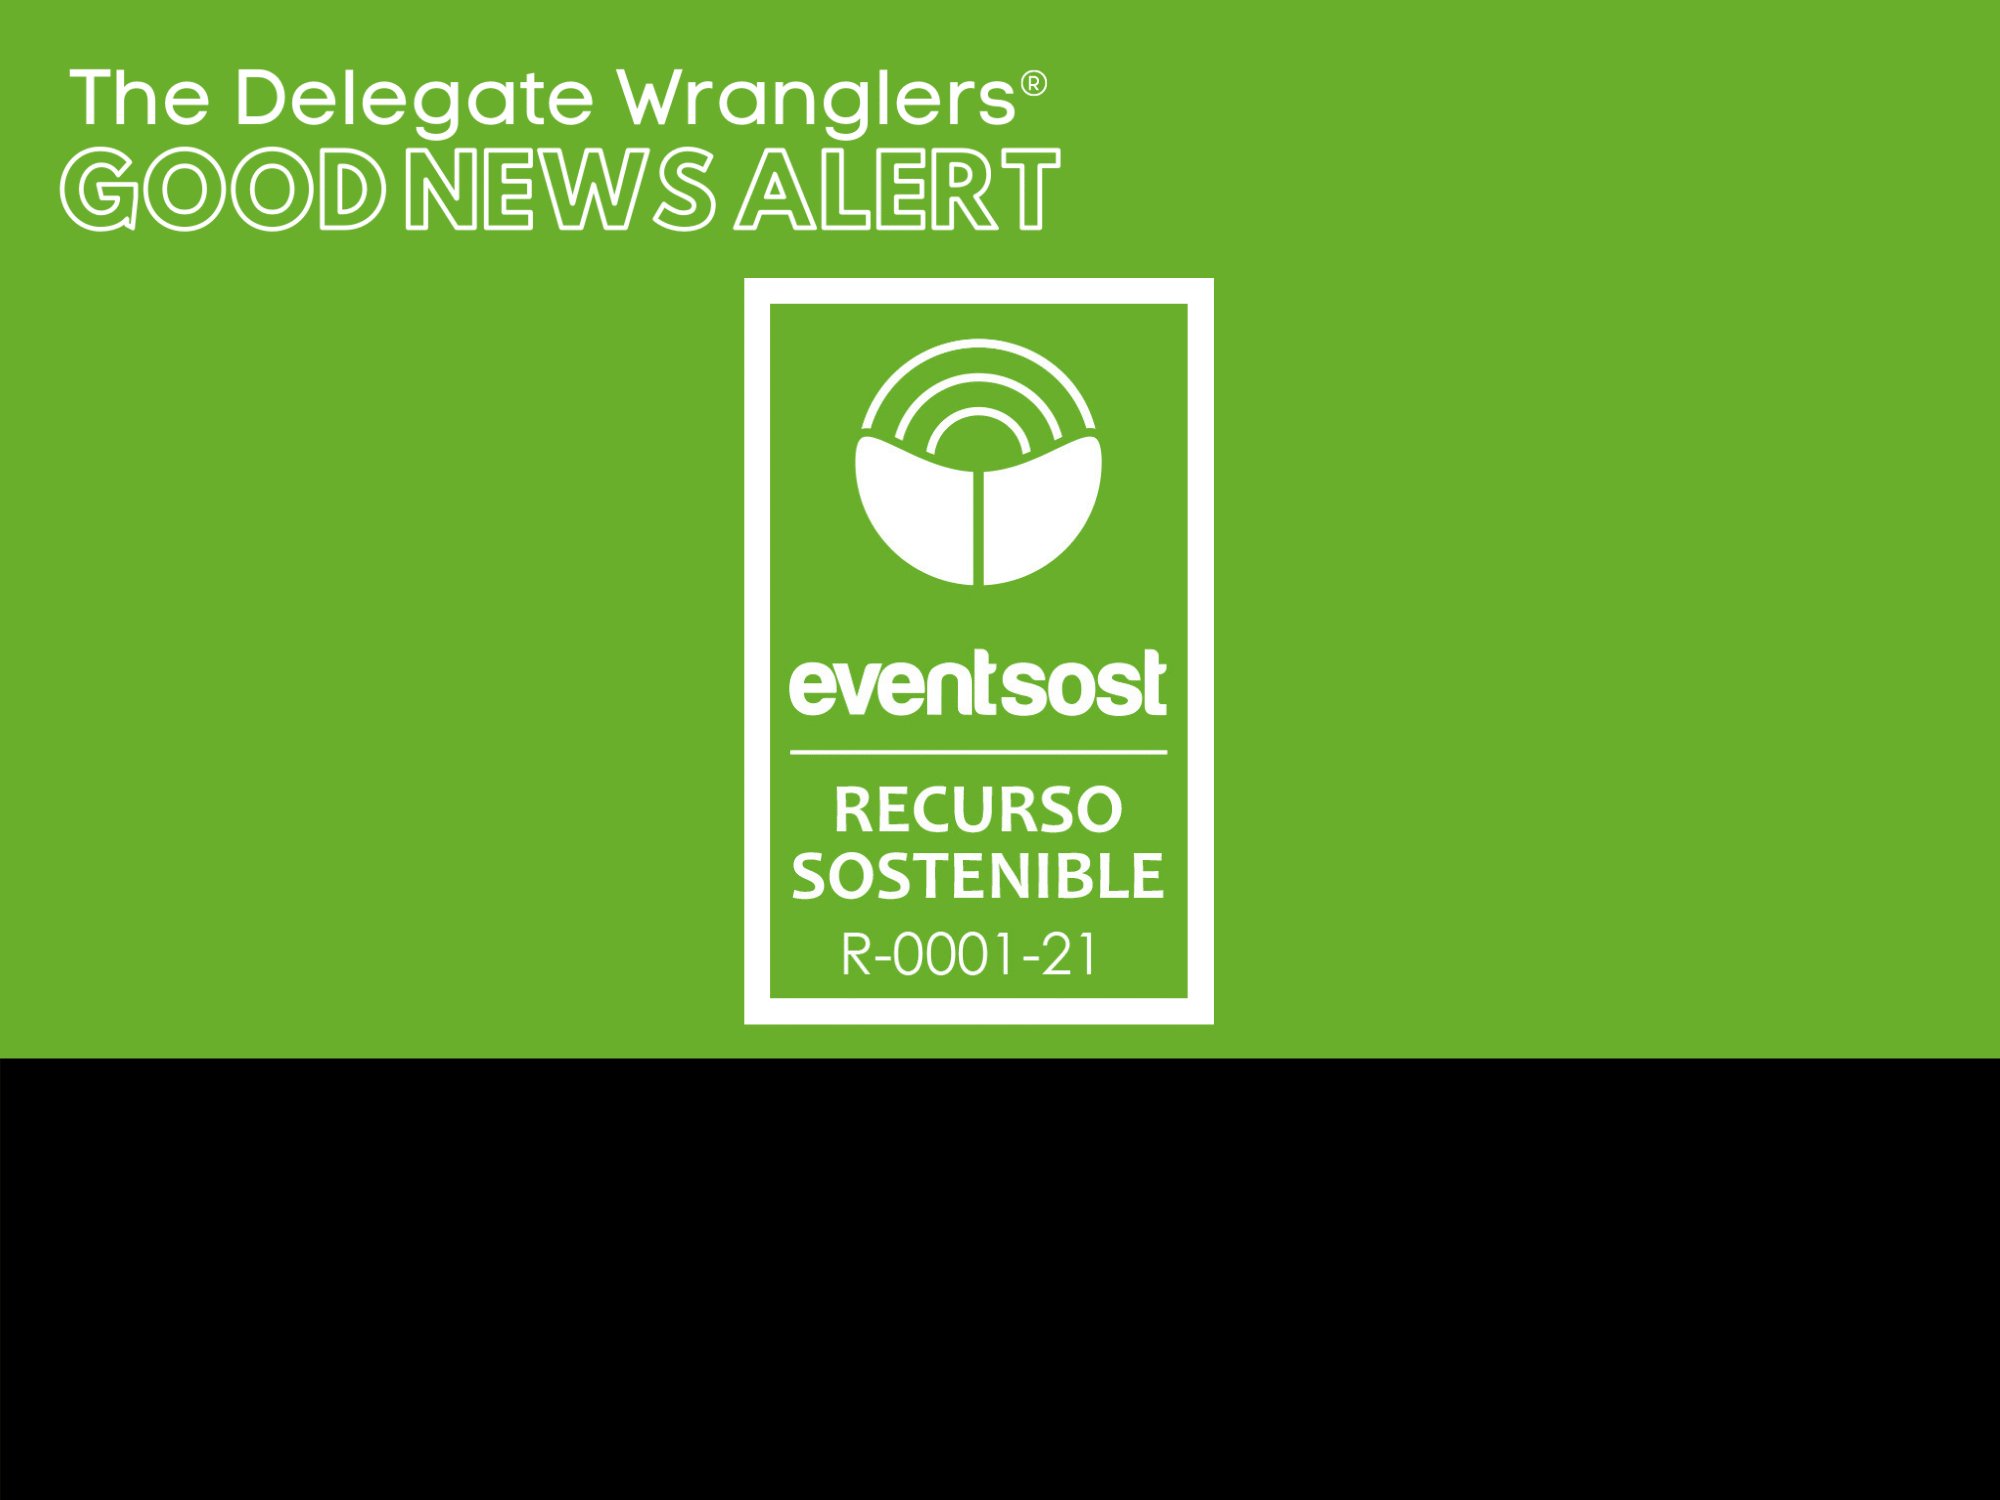 EventsCase announces its successful certification as a sustainable resource for events